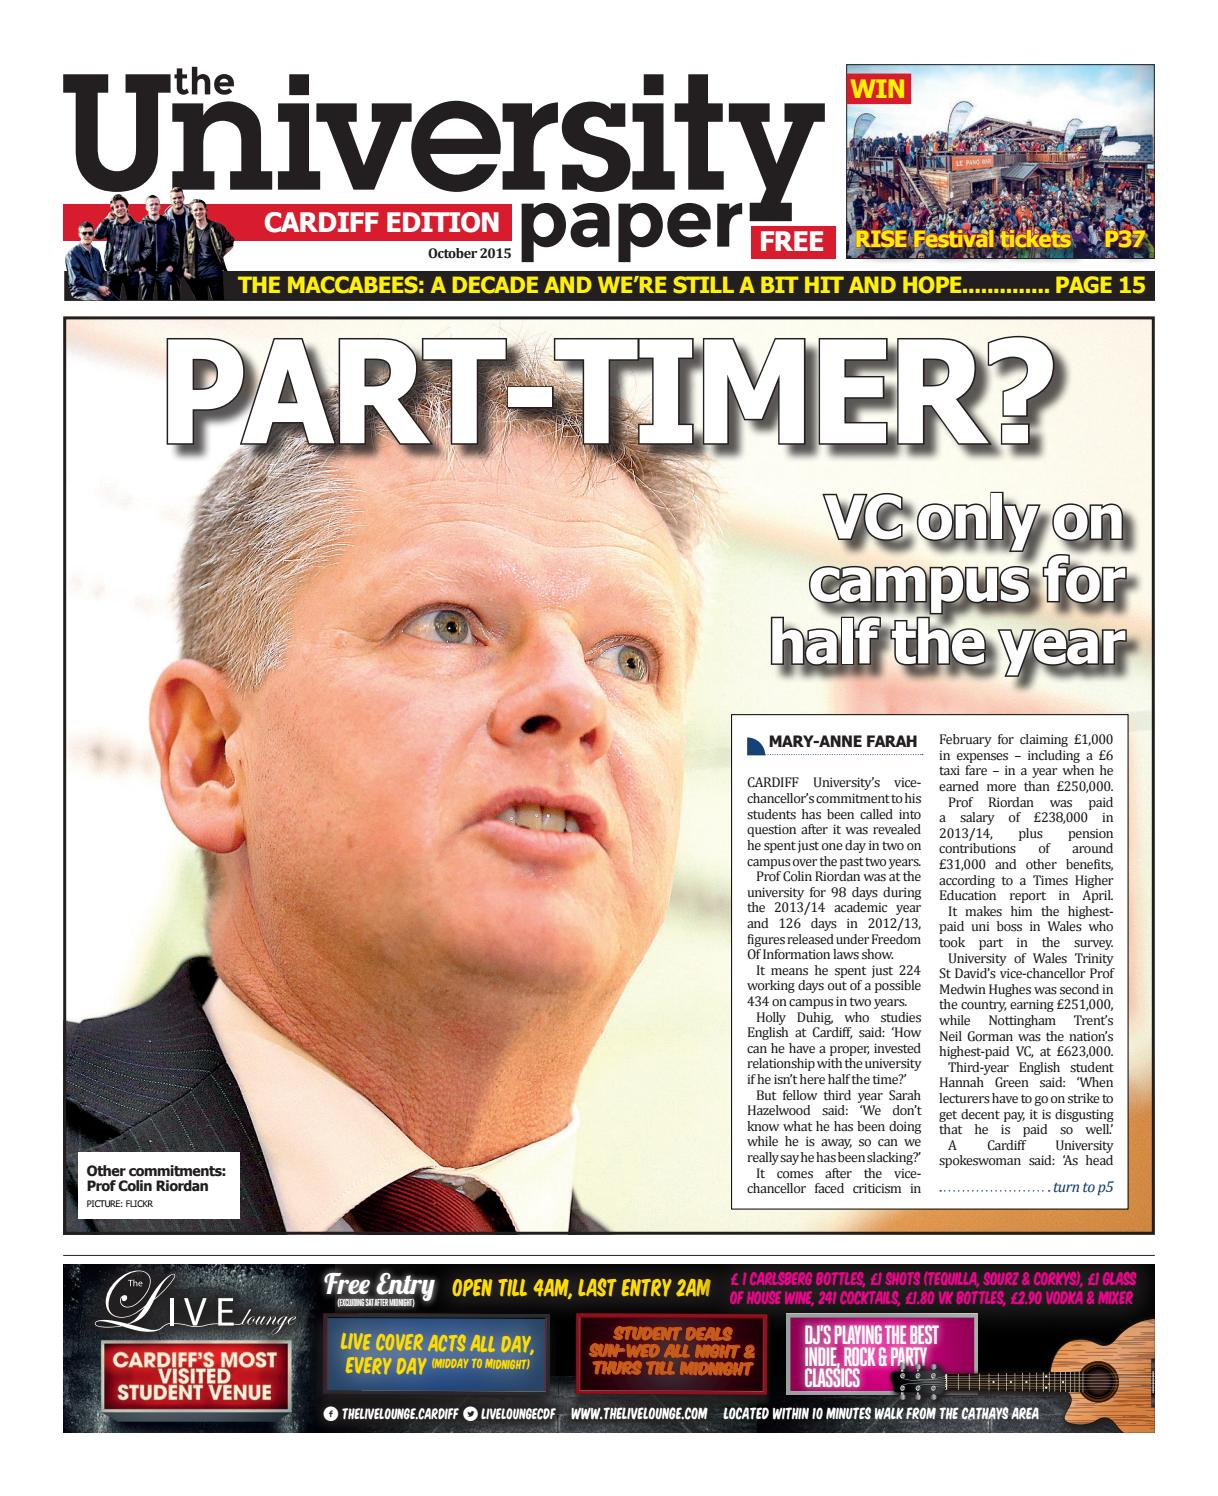 Cardiff Edition October 20 by The University Paper   issuu